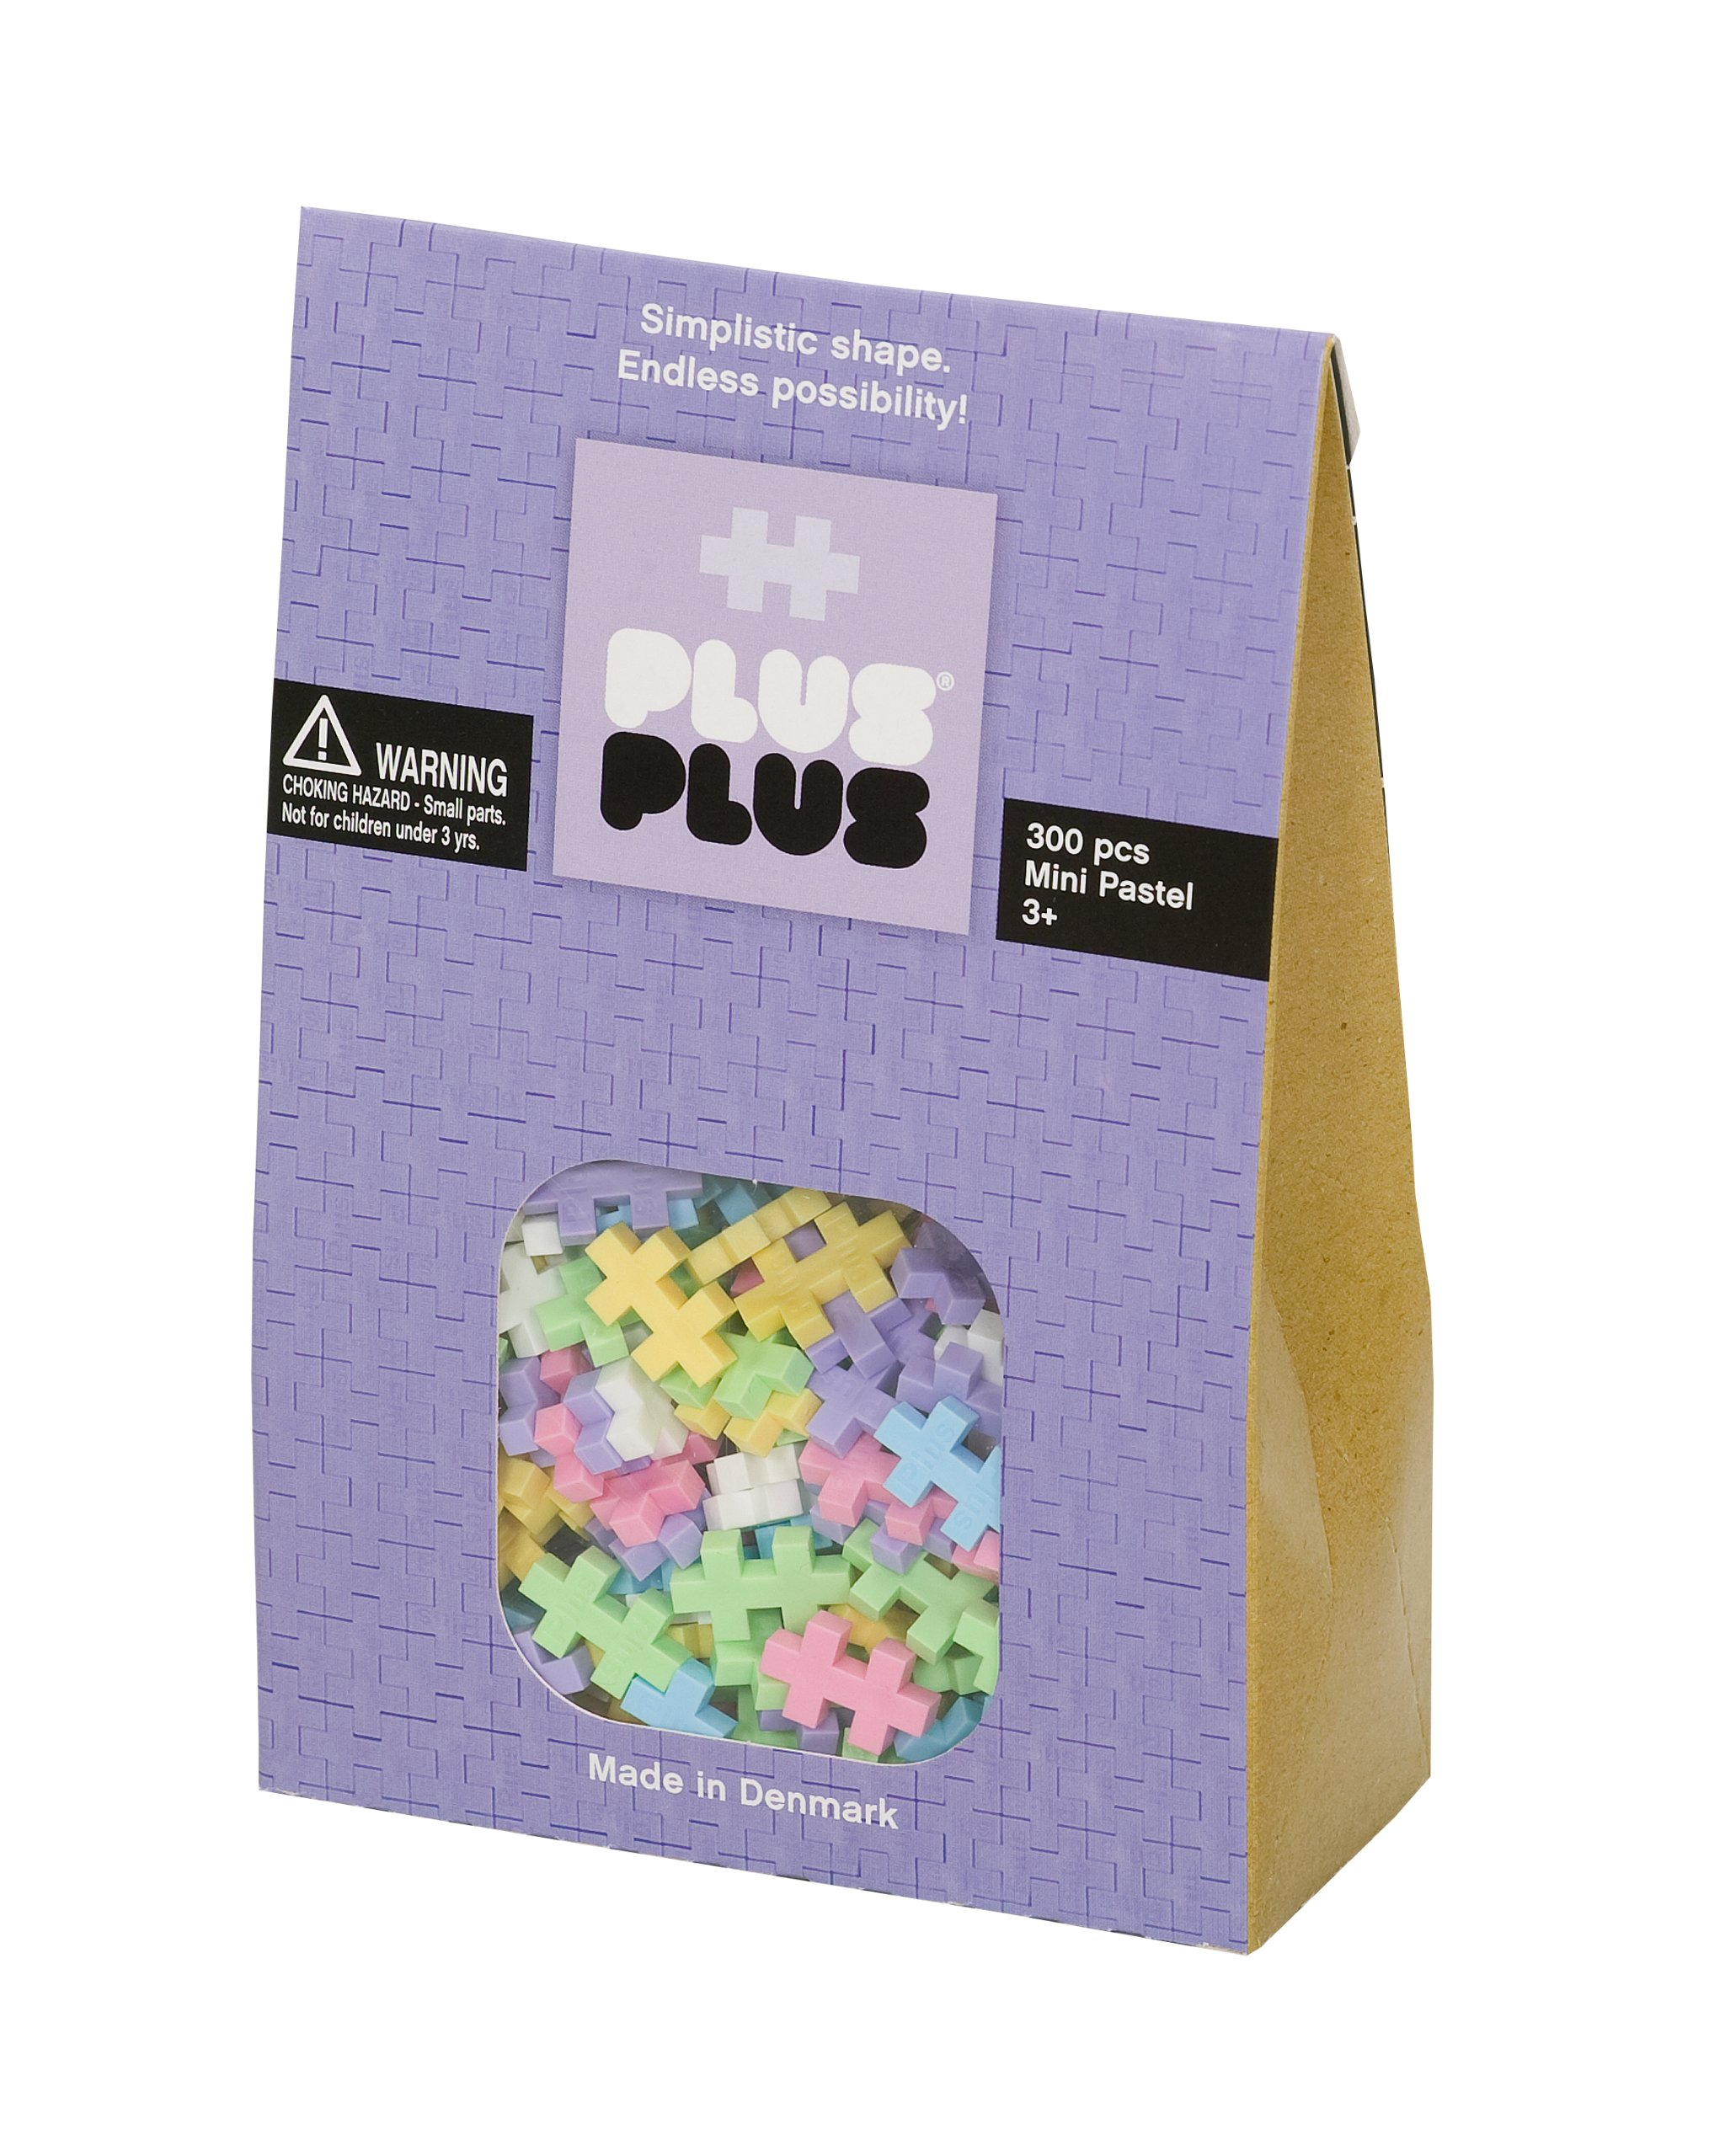 Plus-Pastel Assortment, 300-Piece